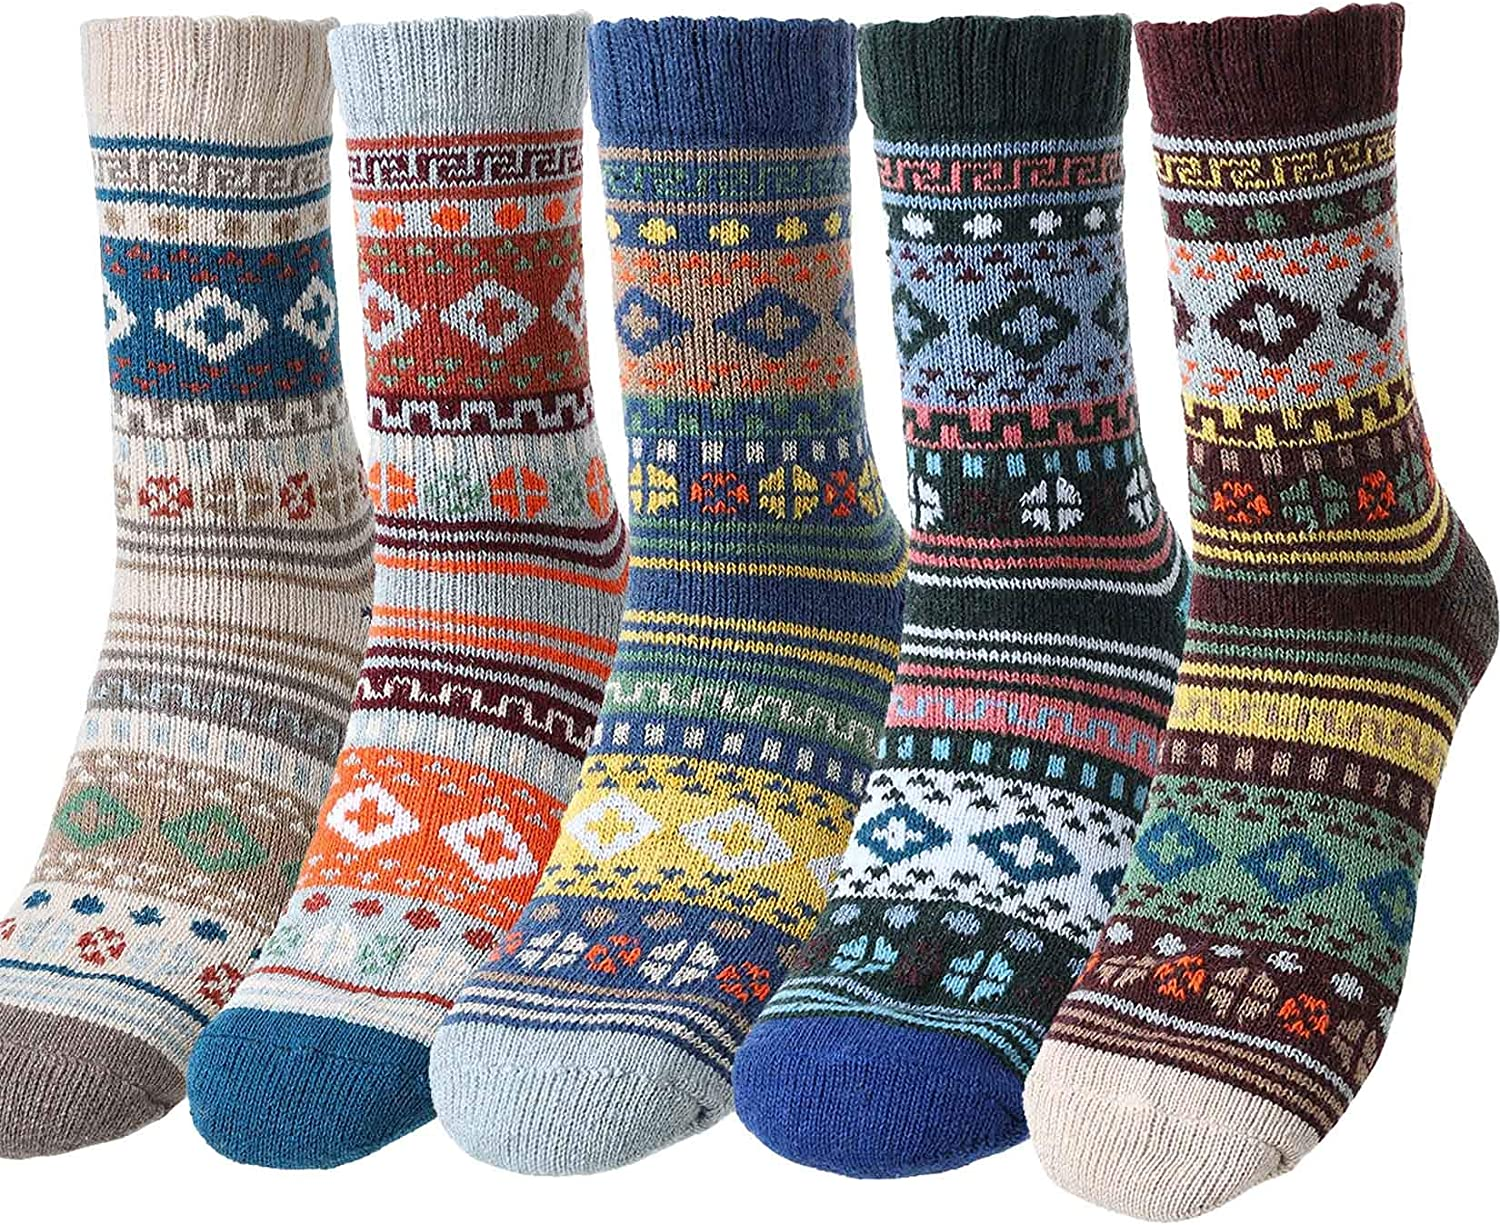 Campsis 5 Pack Vintage Warm Socks Nordic Thick Knitting Crew Socks Soft Cotton Casual Winter Socks Christmas Gifts for Men and Women